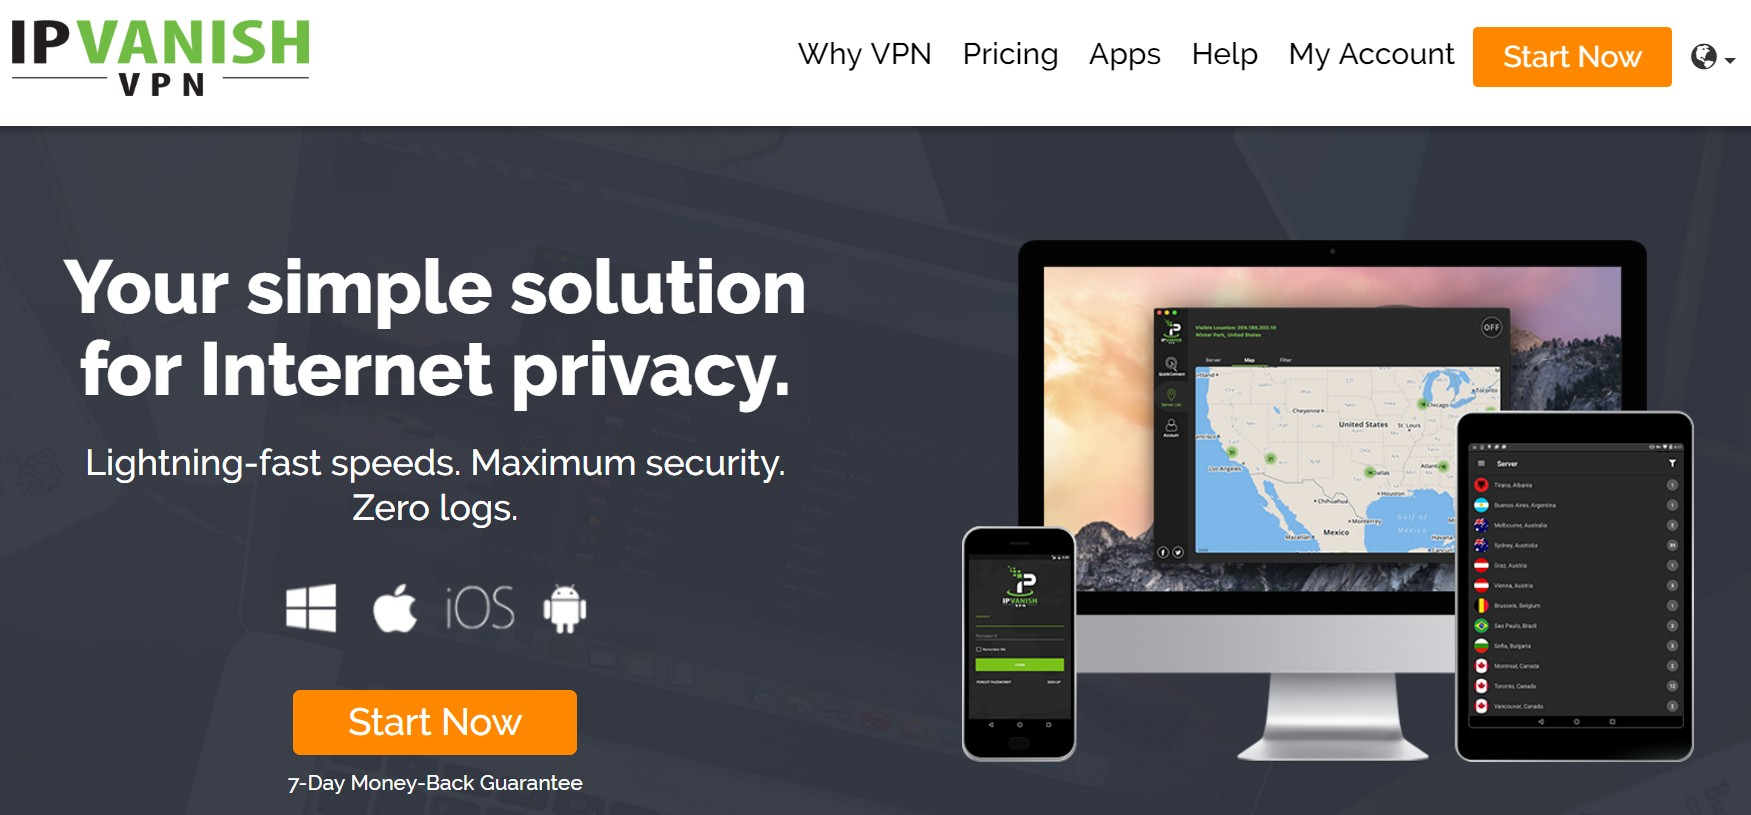 IP Vanish VPN Home Page - Best VPN Windows 10